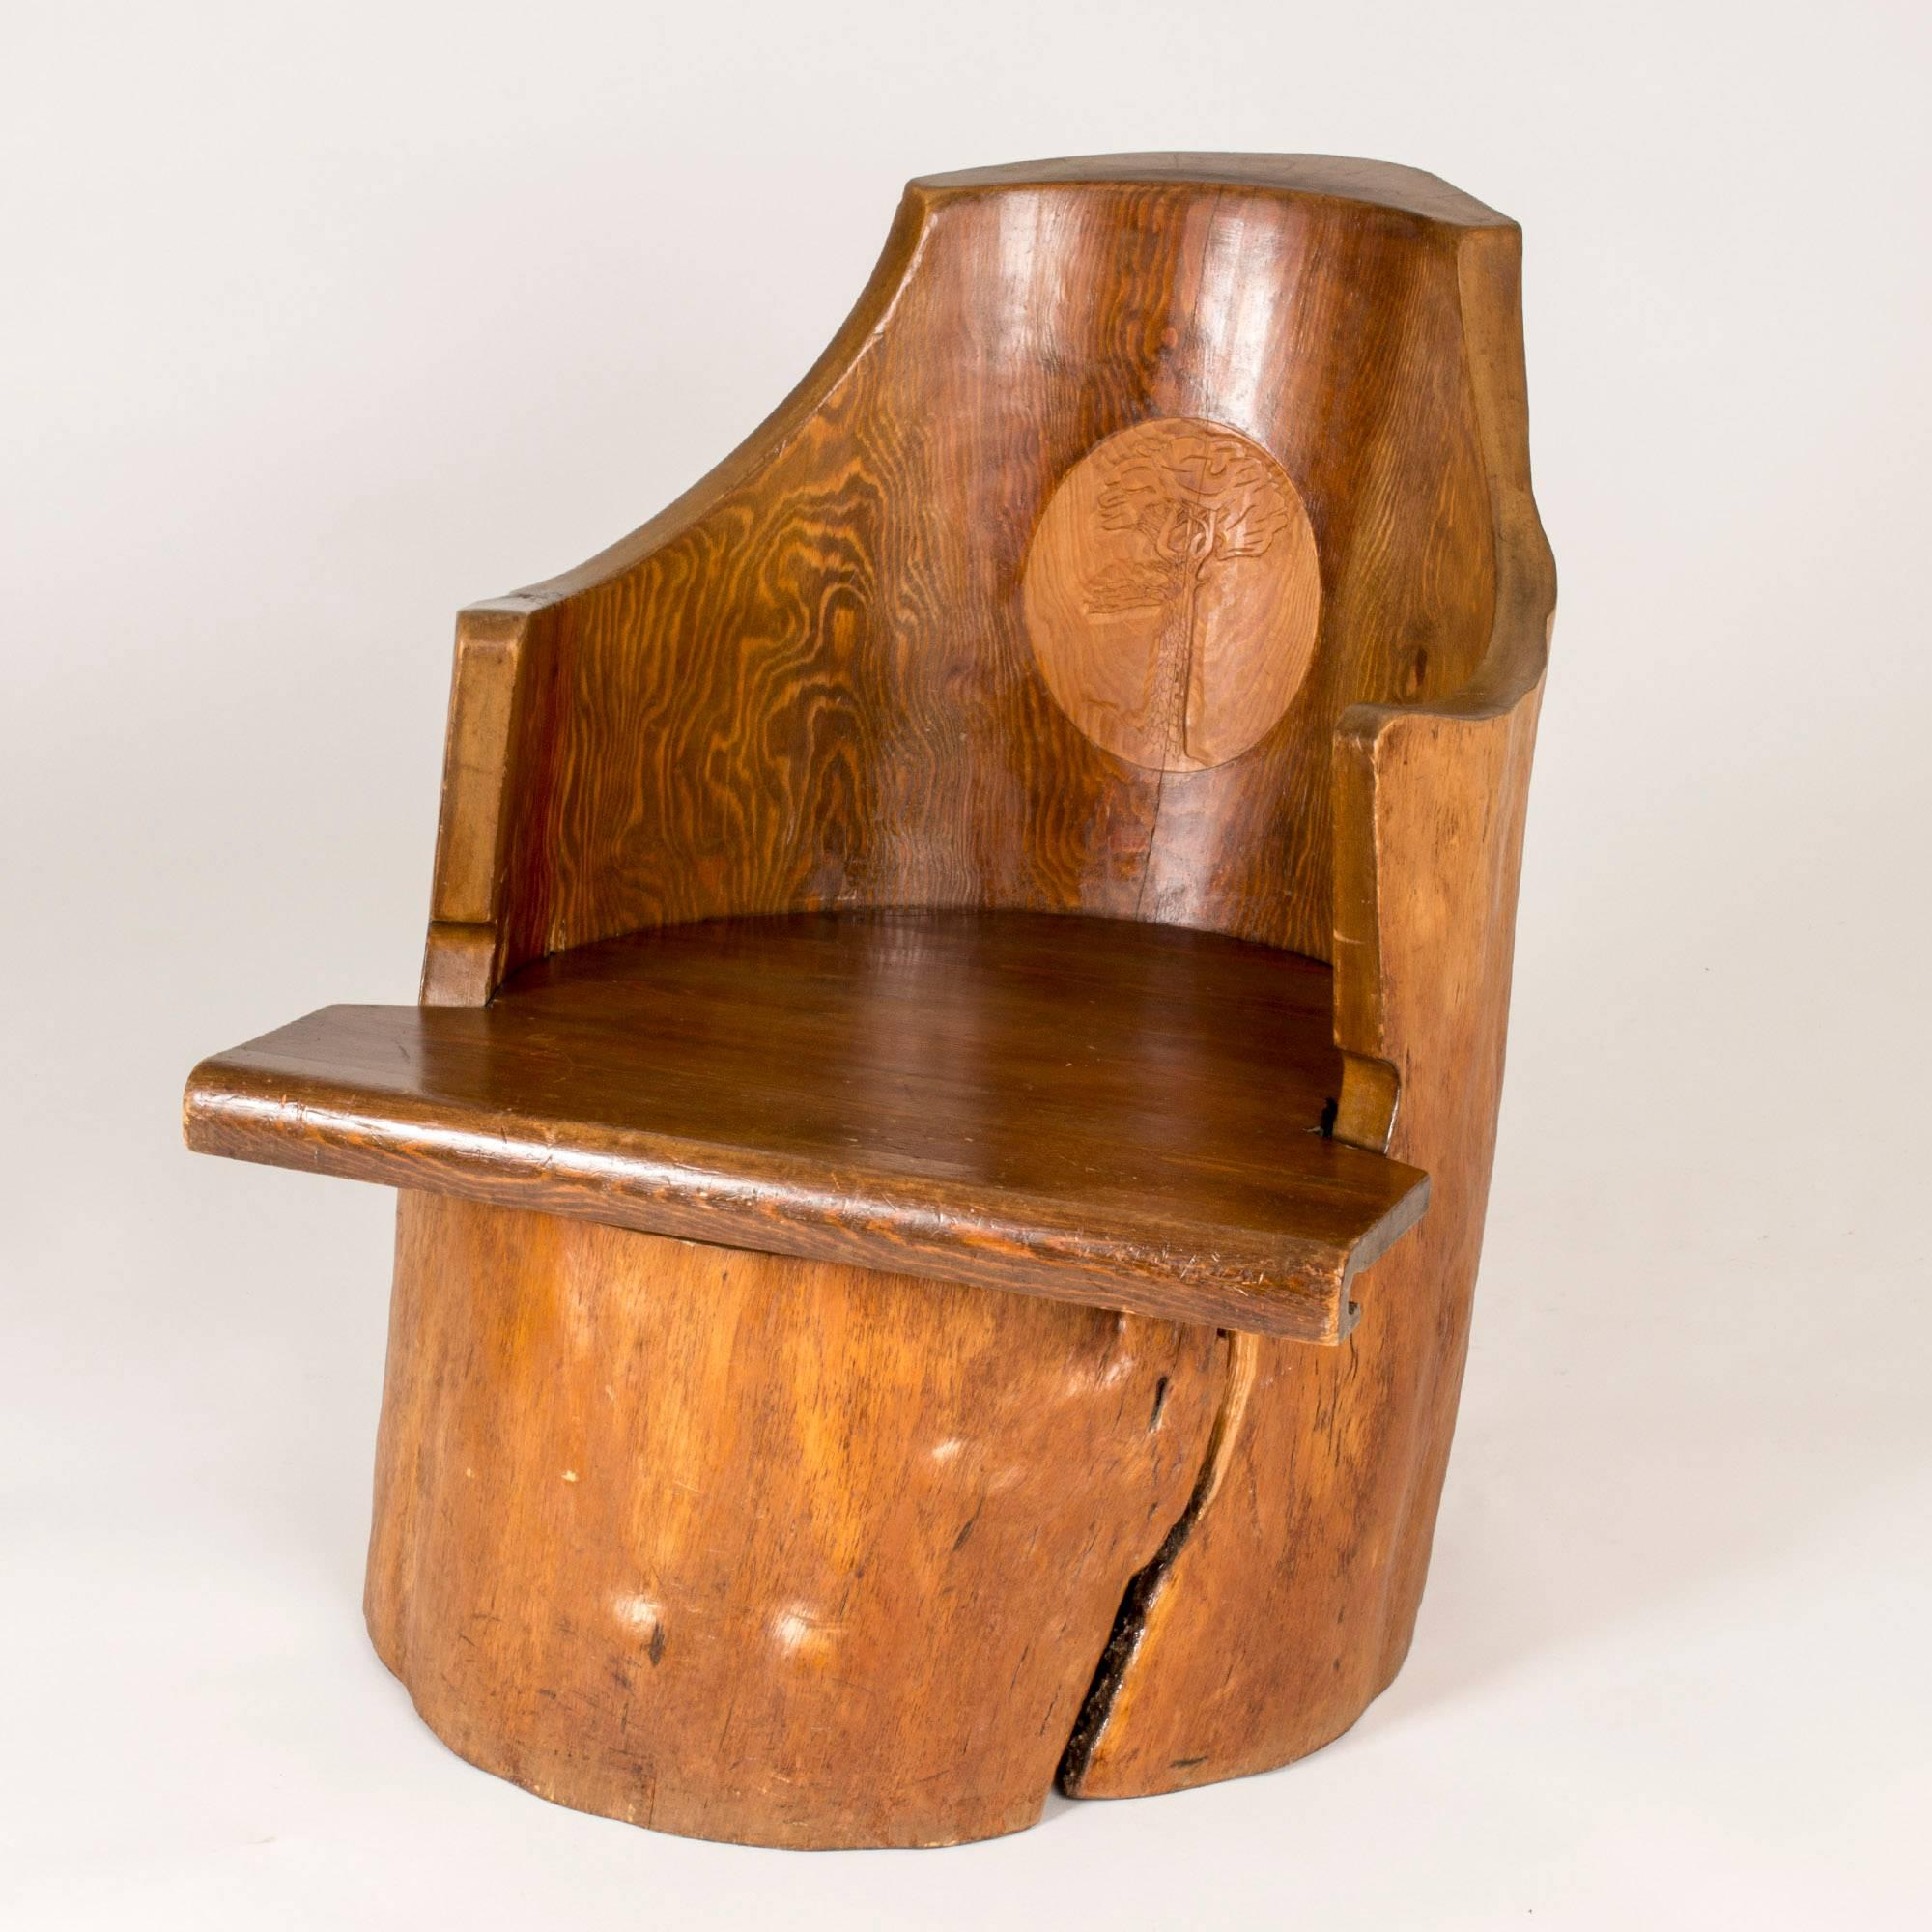 Stump Chair Made From A Large Pine Tree Trunk, With Sculpted Armrests And A  Carved